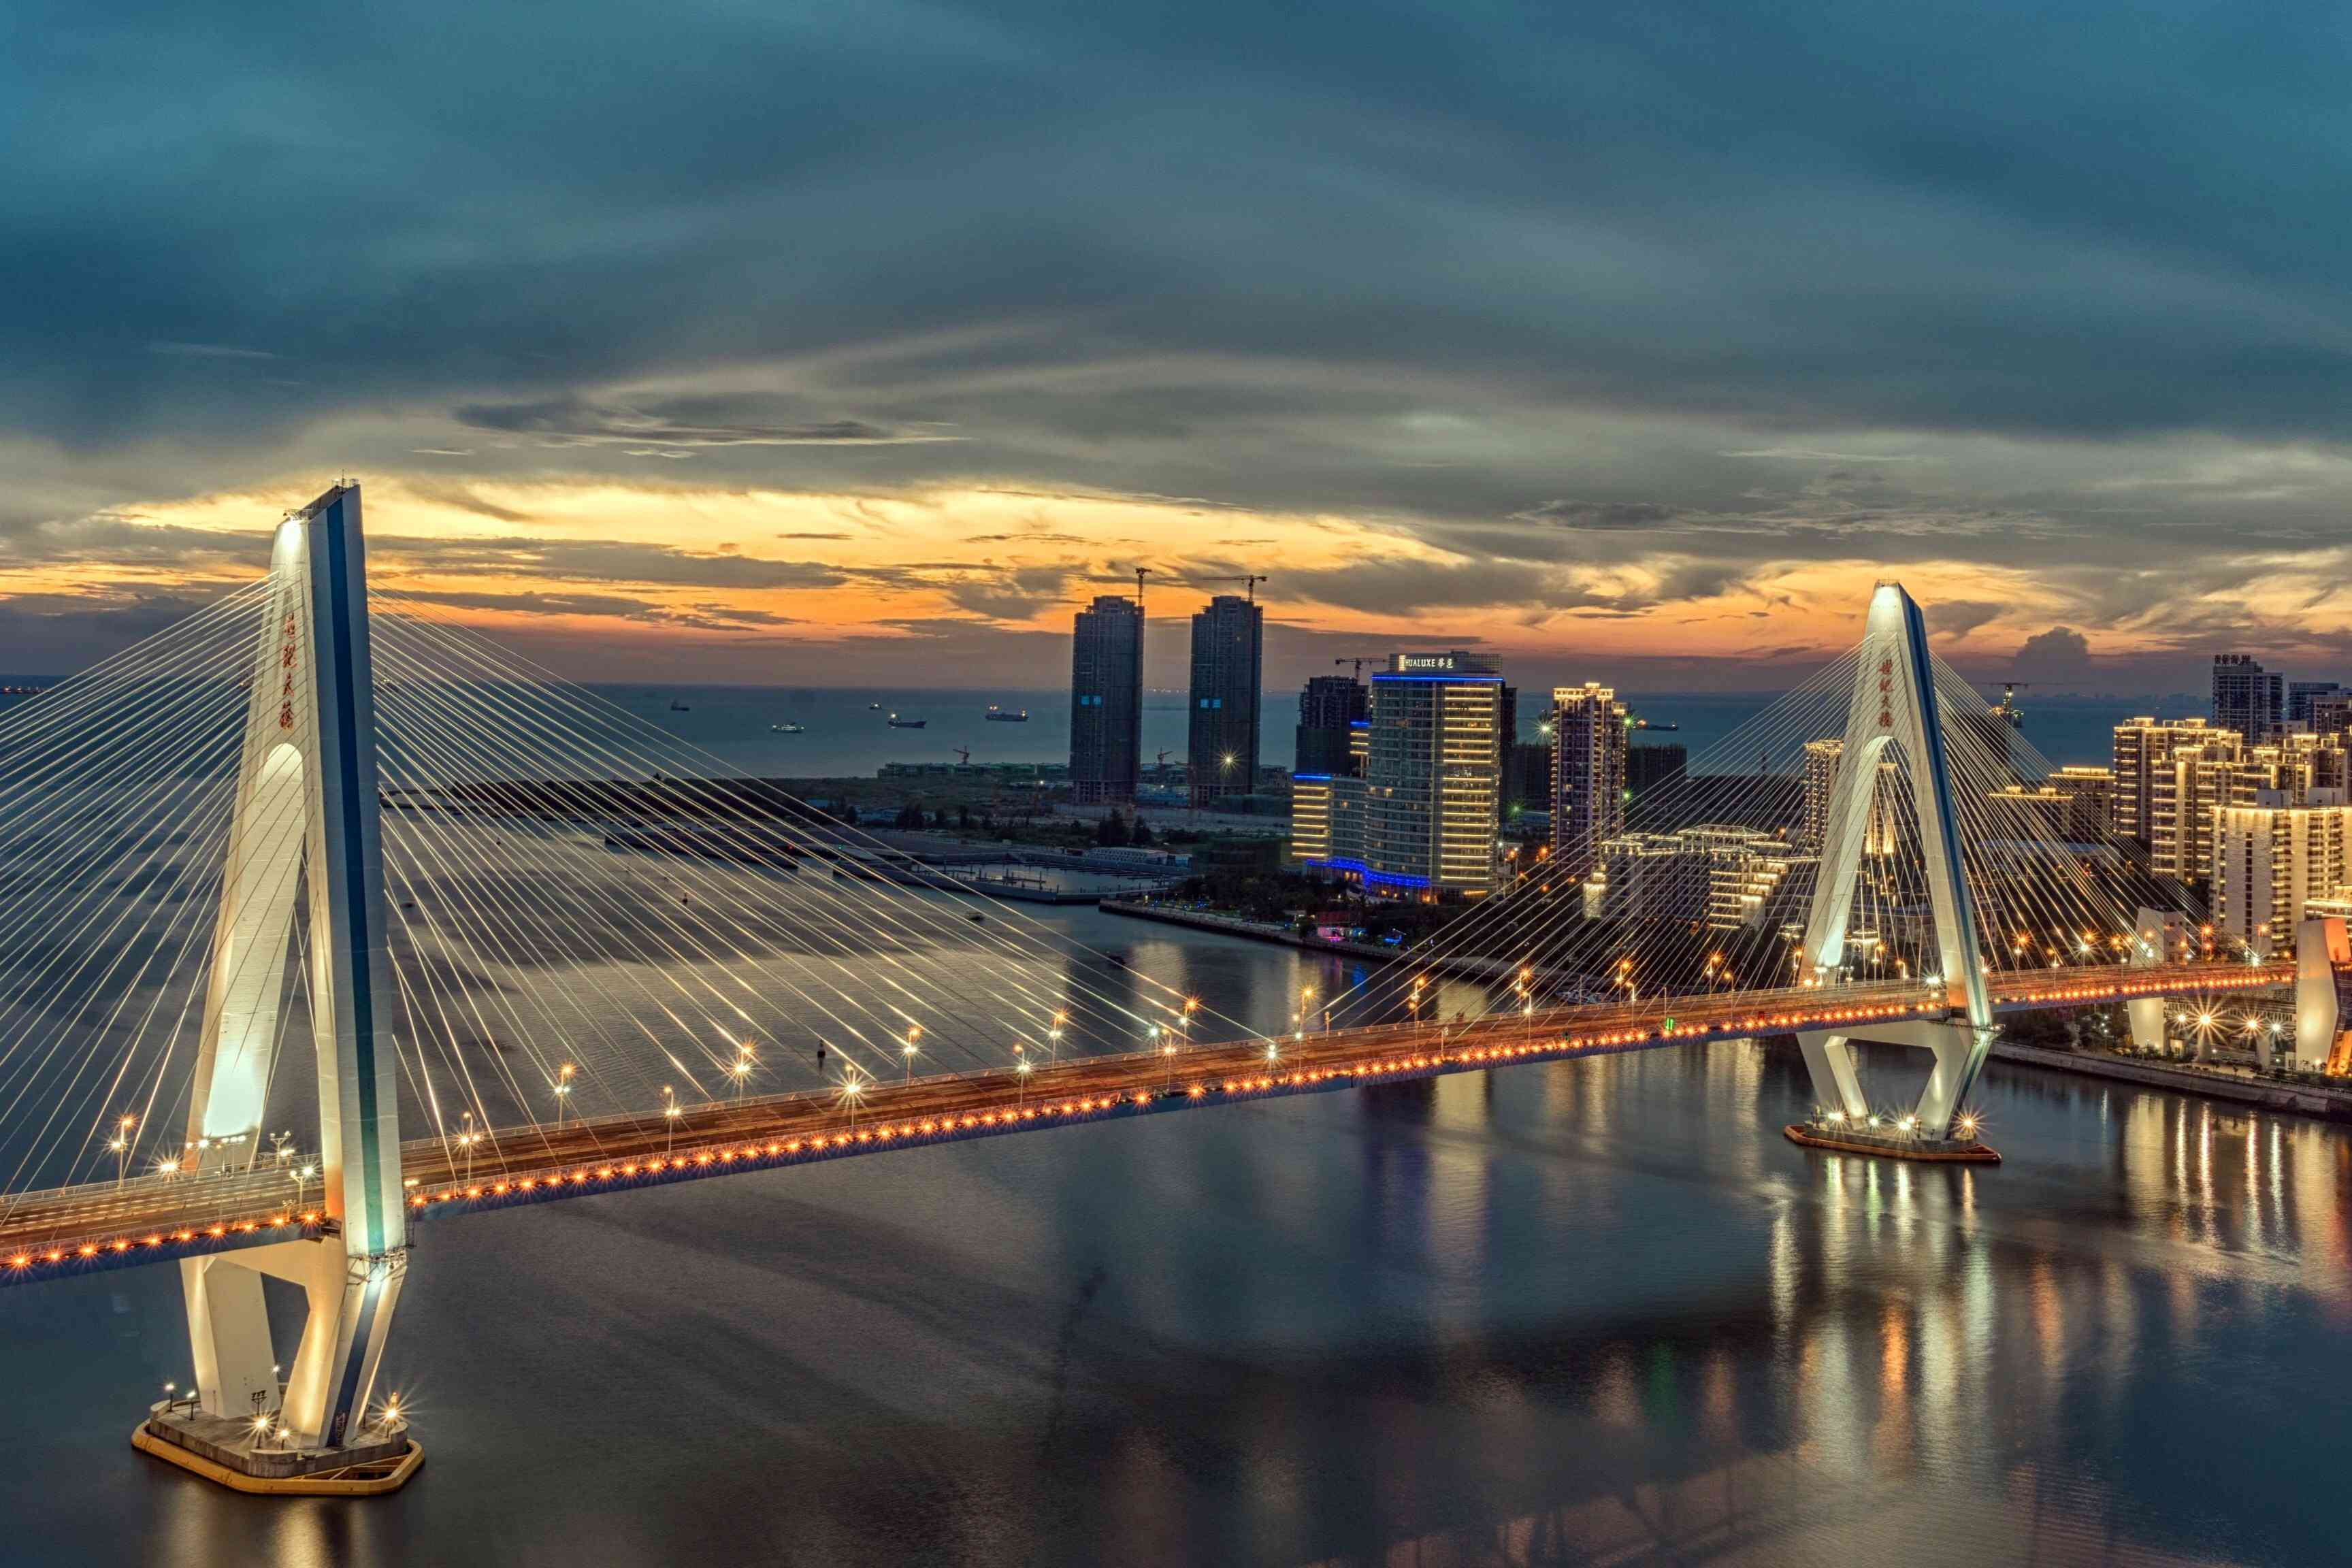 Modern cable-stayed bridge over river in city during sunset in Haikou